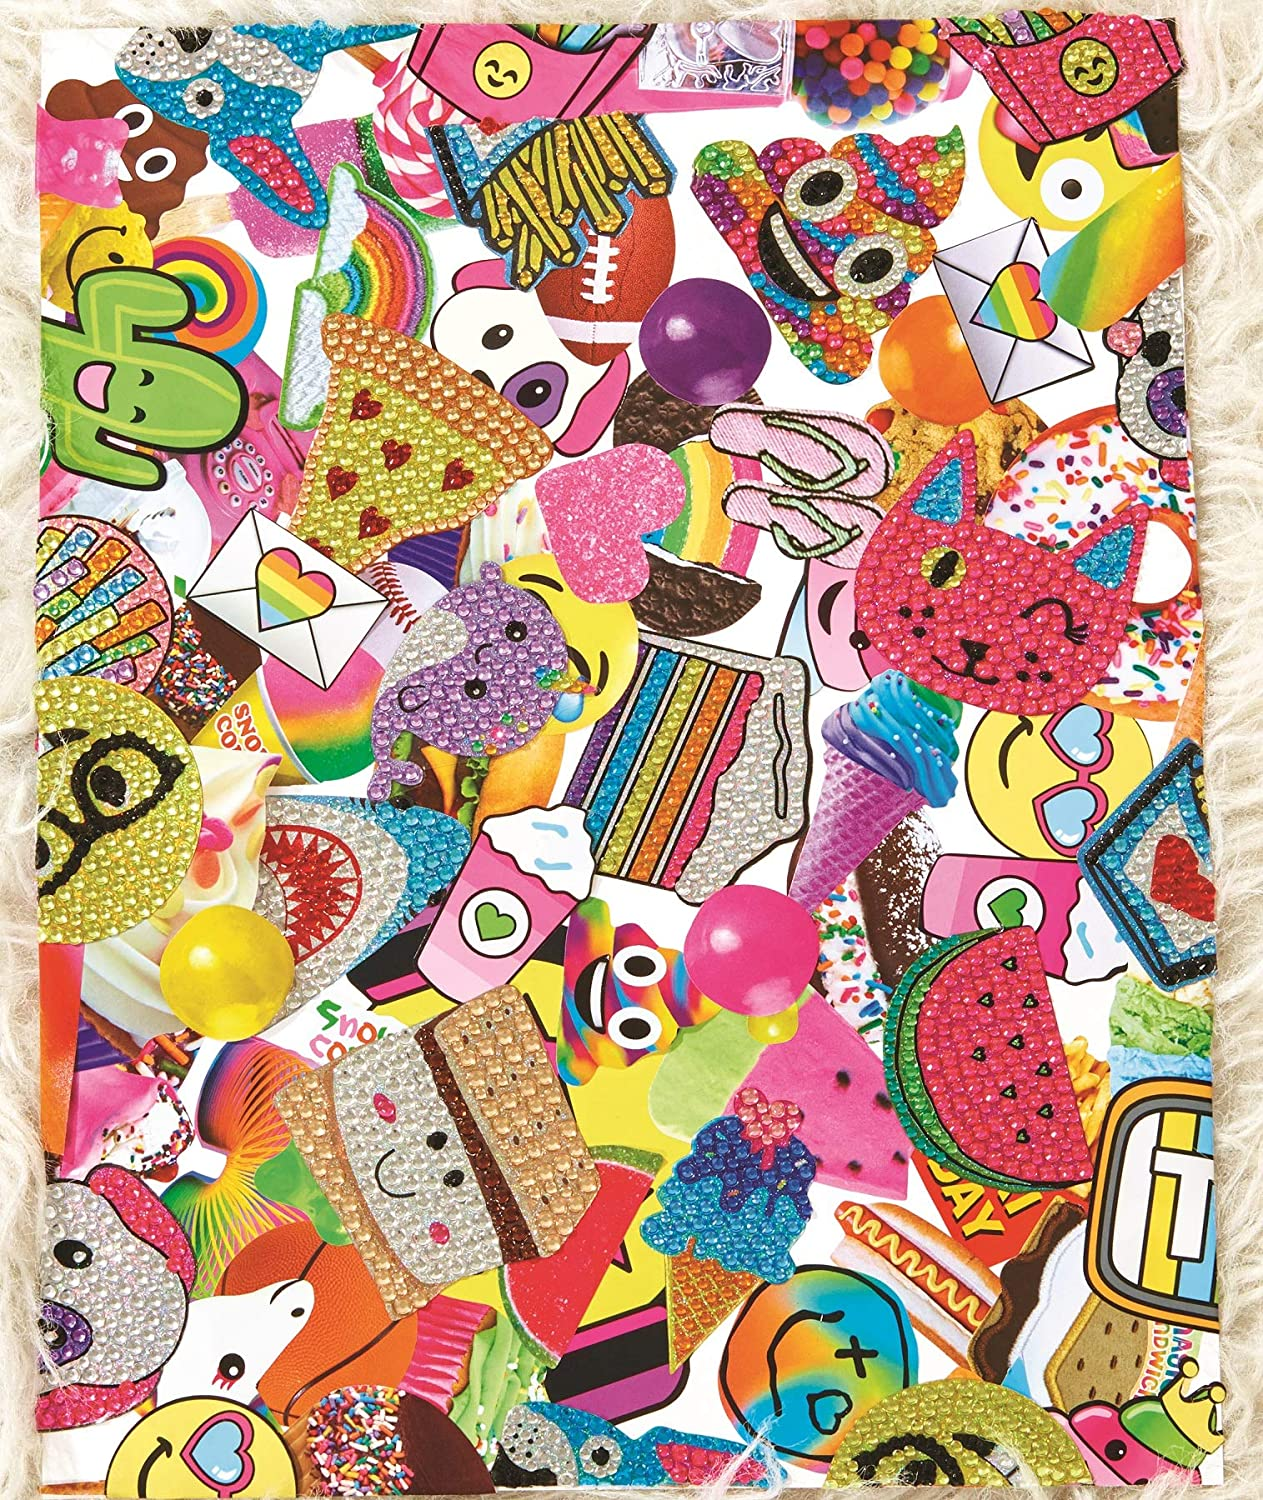 iscream Groovy Patches Sheet of 8 Repositionable Vinyl Cling Decals The Mines Press Inc.